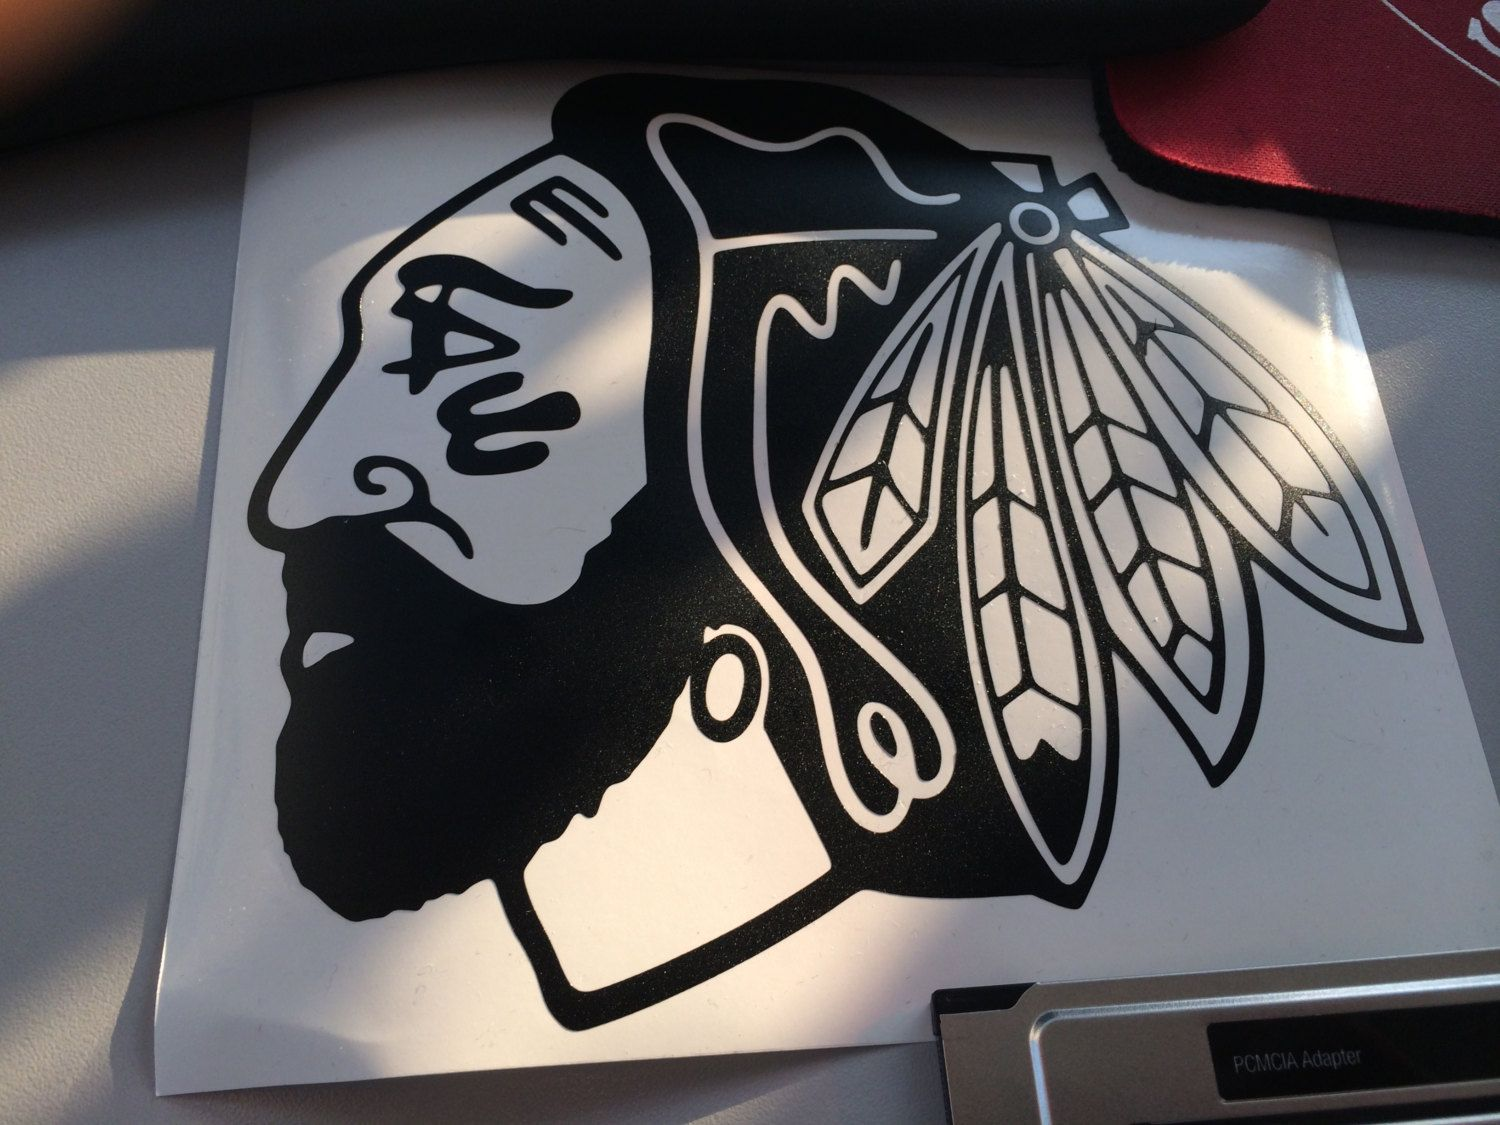 Chicago Blackhawks Playoff Beard Vinyl Decal Sticker - Window stickers for cars chicago